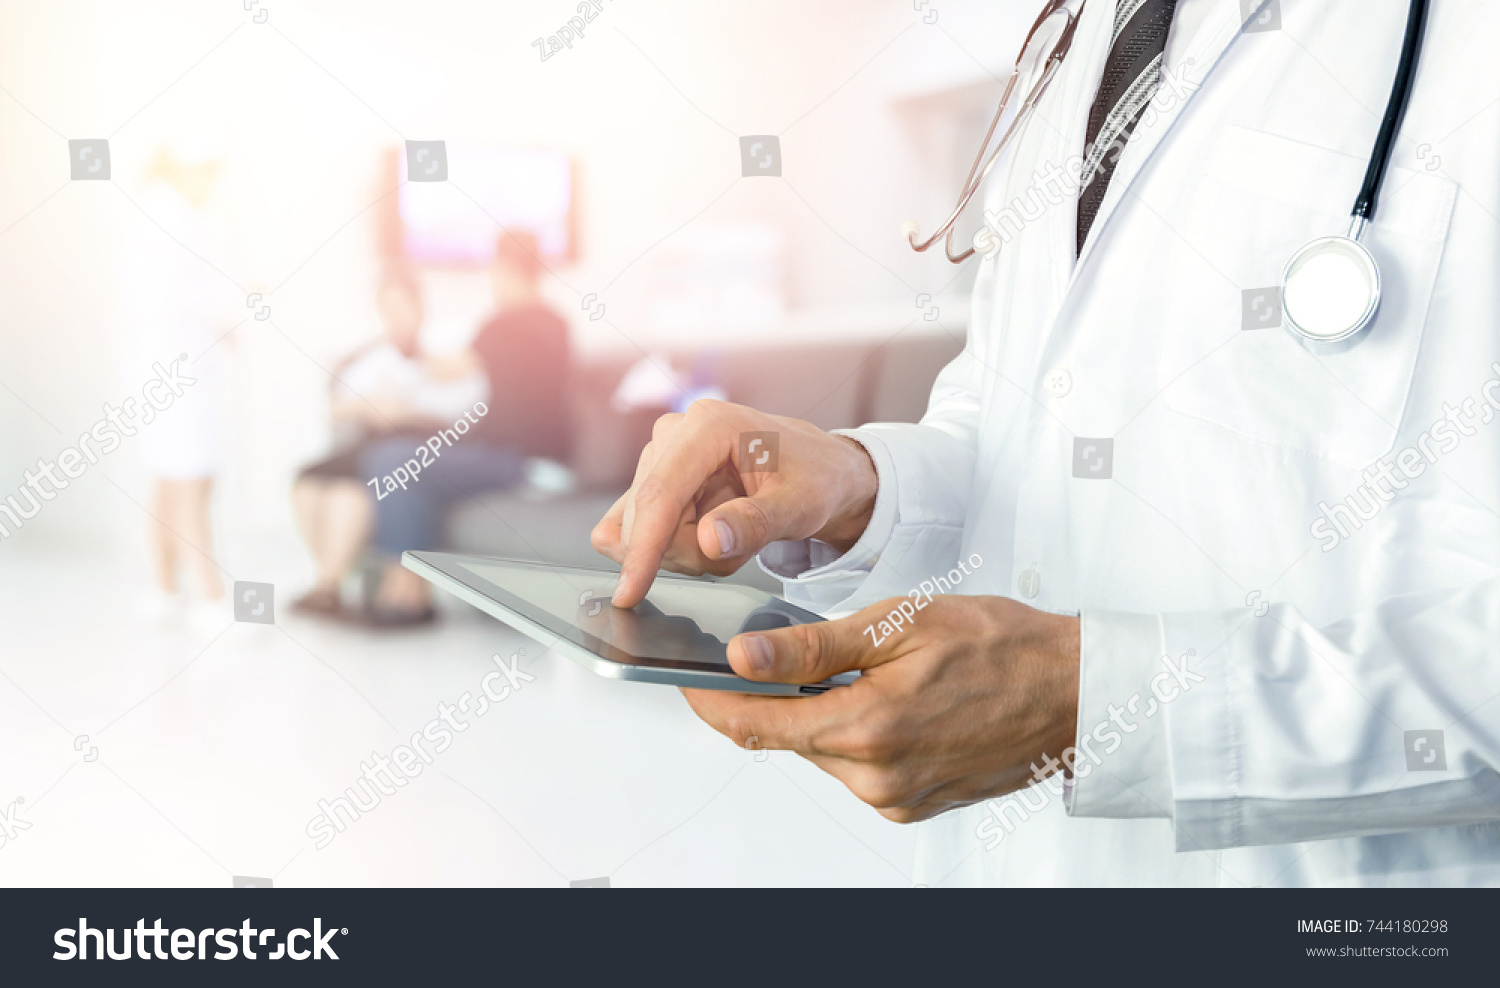 Smart Health Care Internet Things Hospital Stock Photo Edit Now Remote Stethoscope Concept Diagram Of And Automation Management Technology With Paperless Doctor